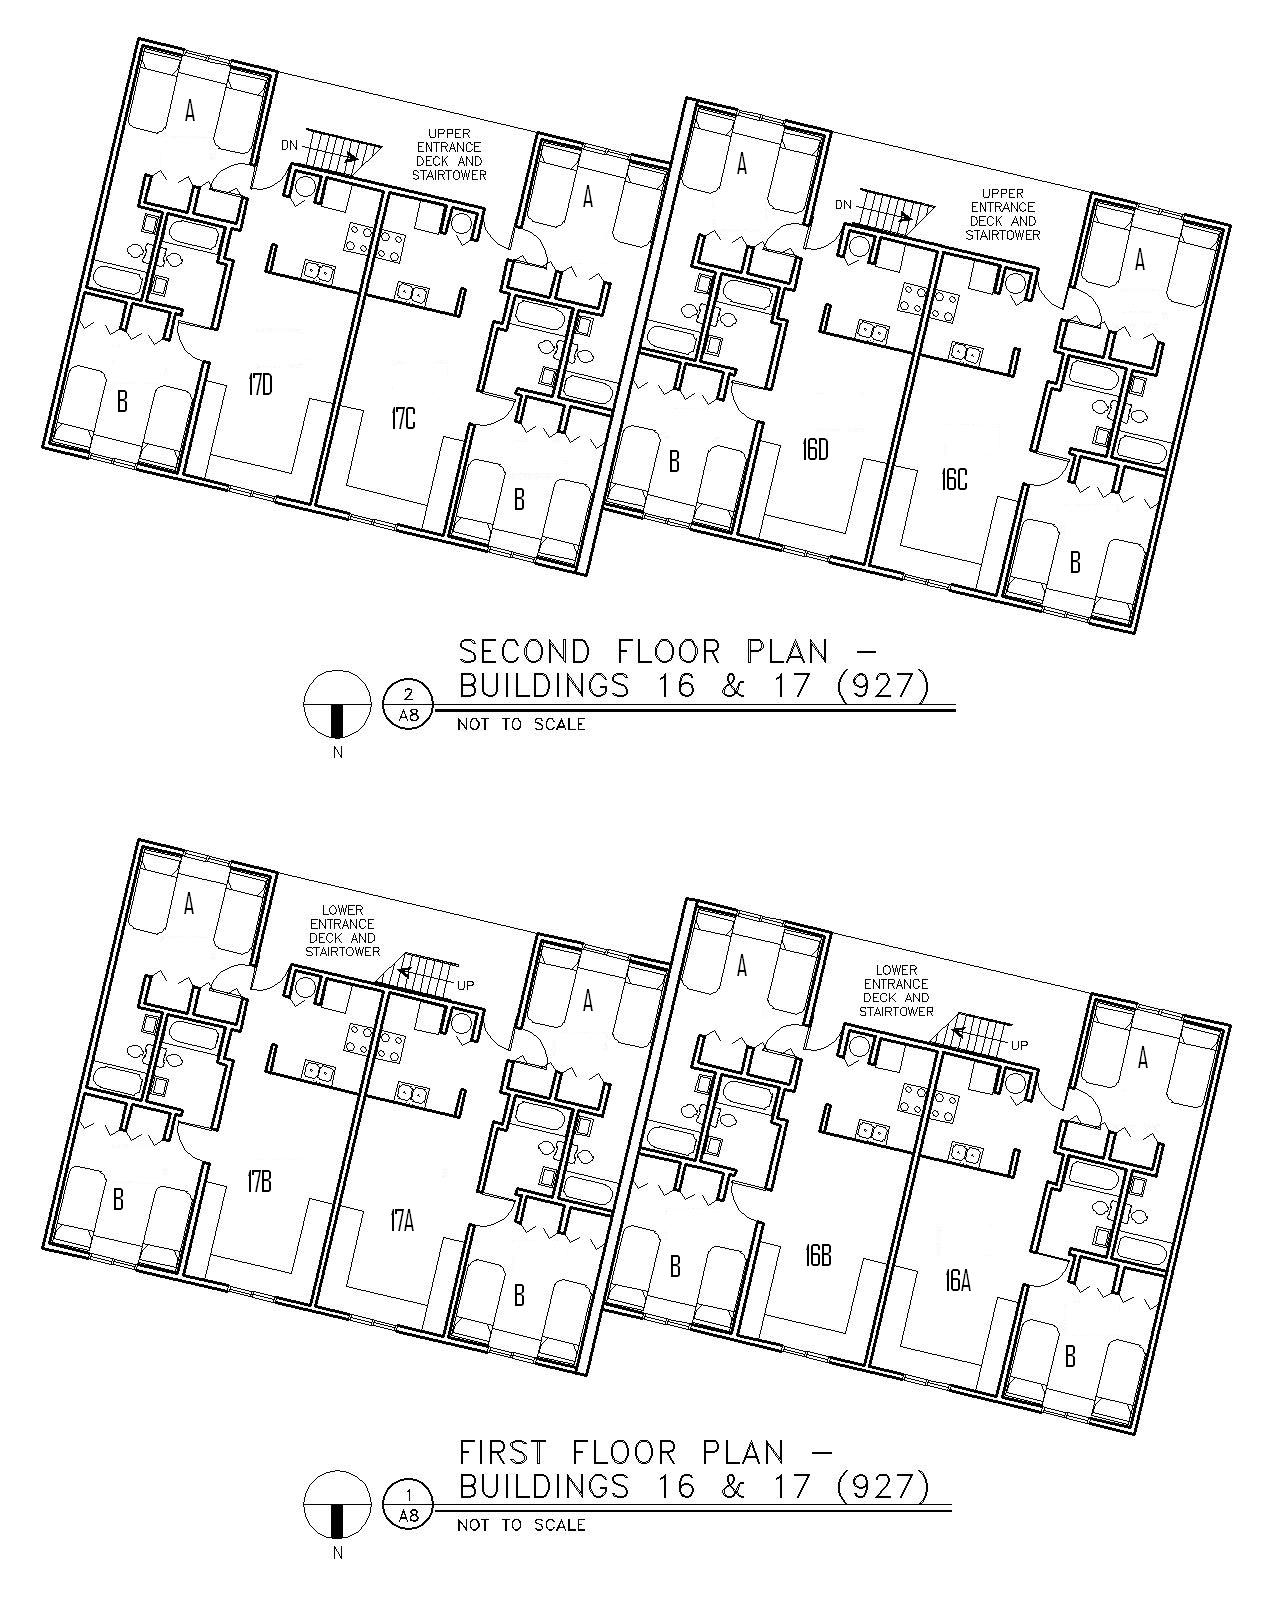 Floor Plan for Buildings 16 & 17